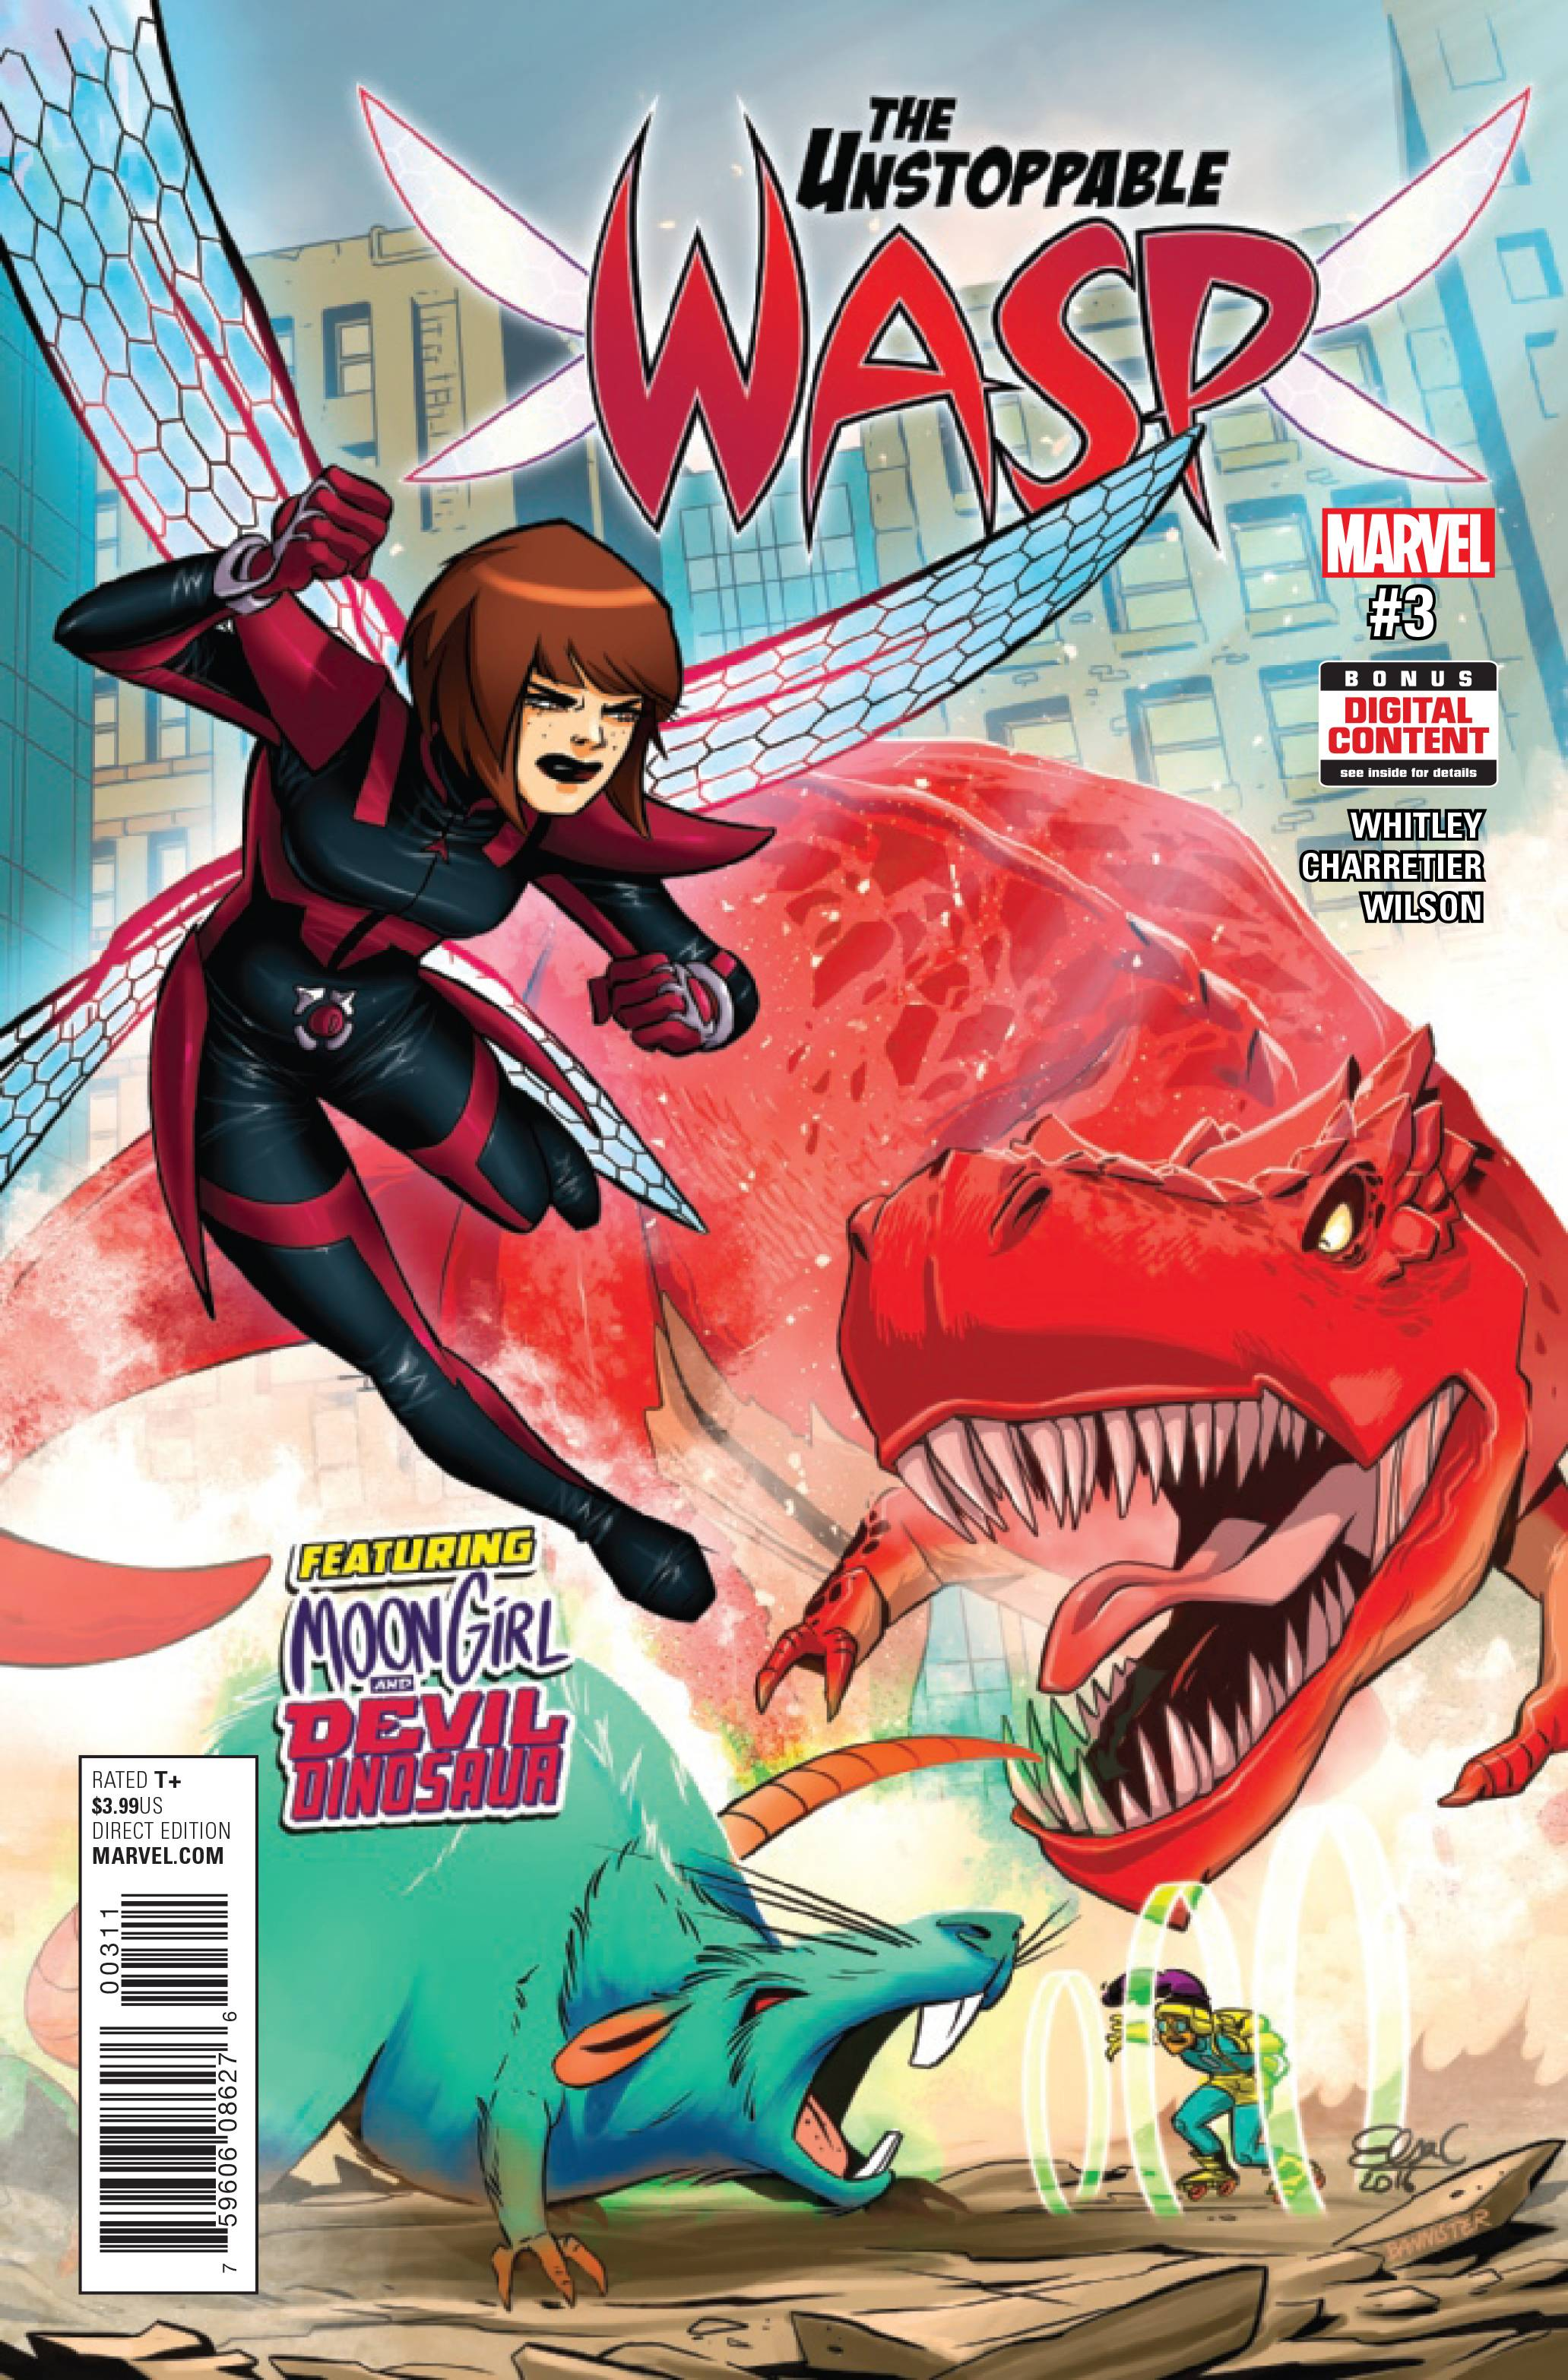 UNSTOPPABLE WASP #3